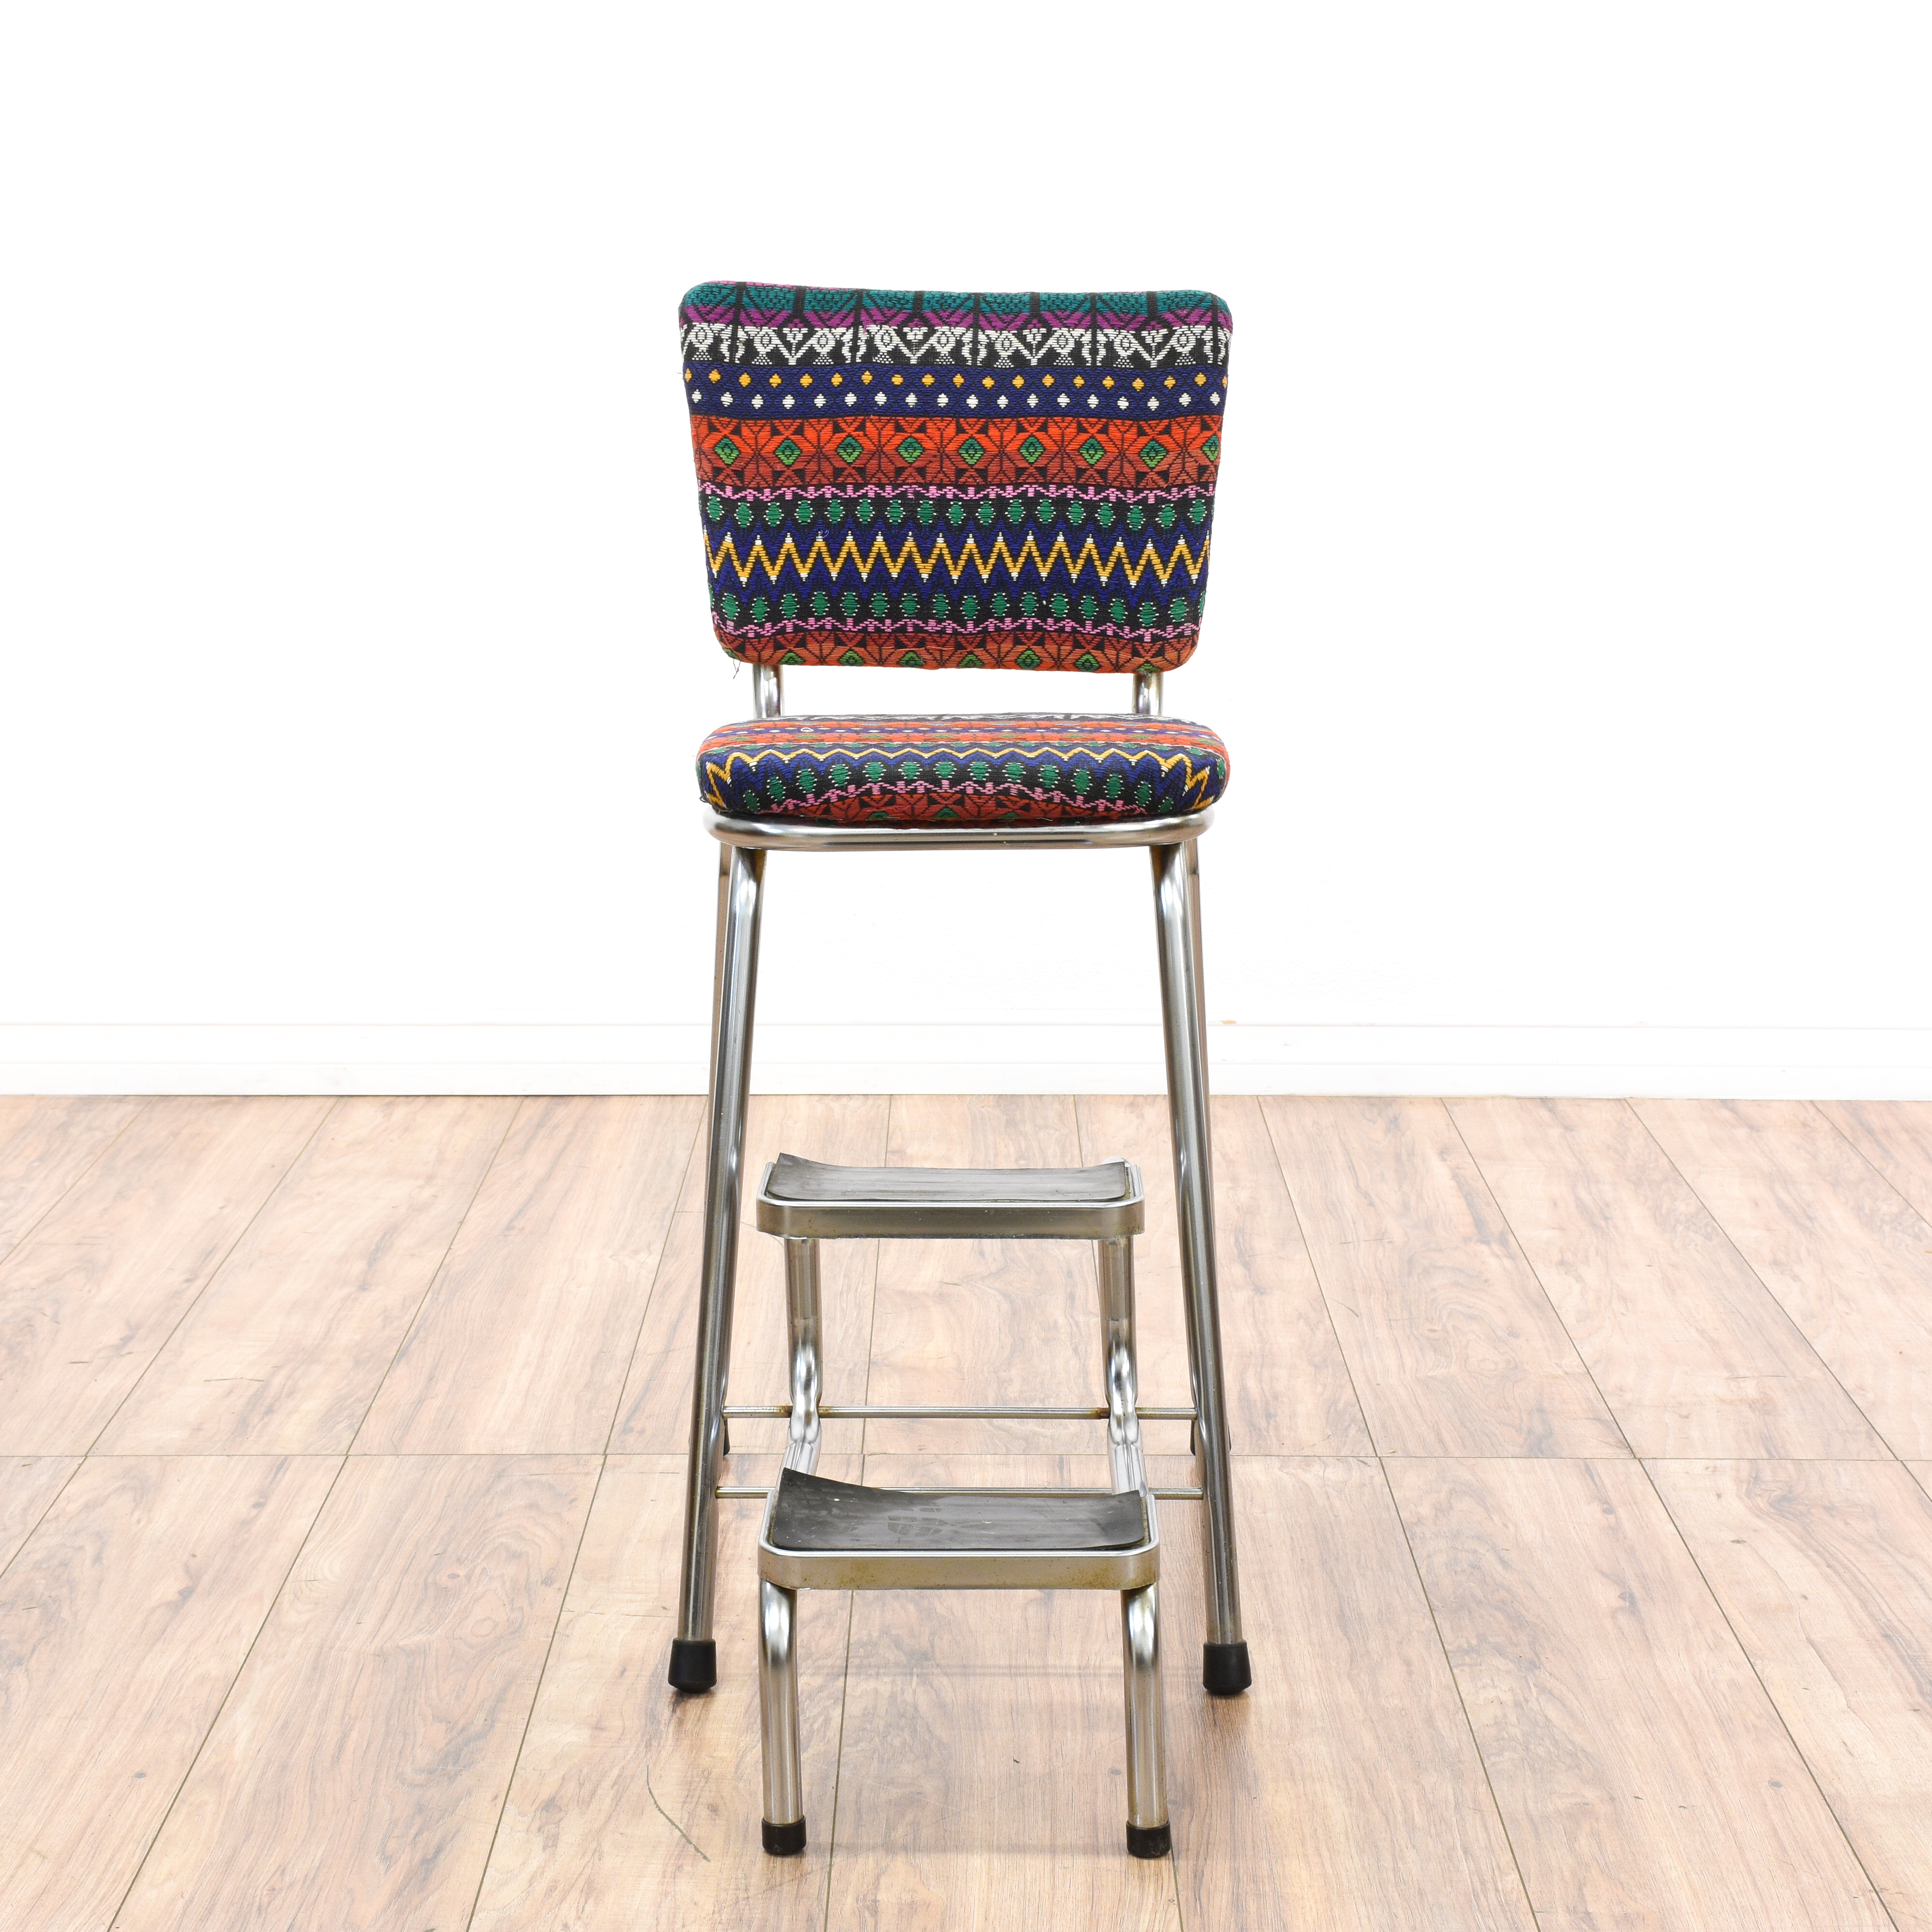 old fashioned kitchen chair step stool making a table boho tribal pattern loveseat vintage